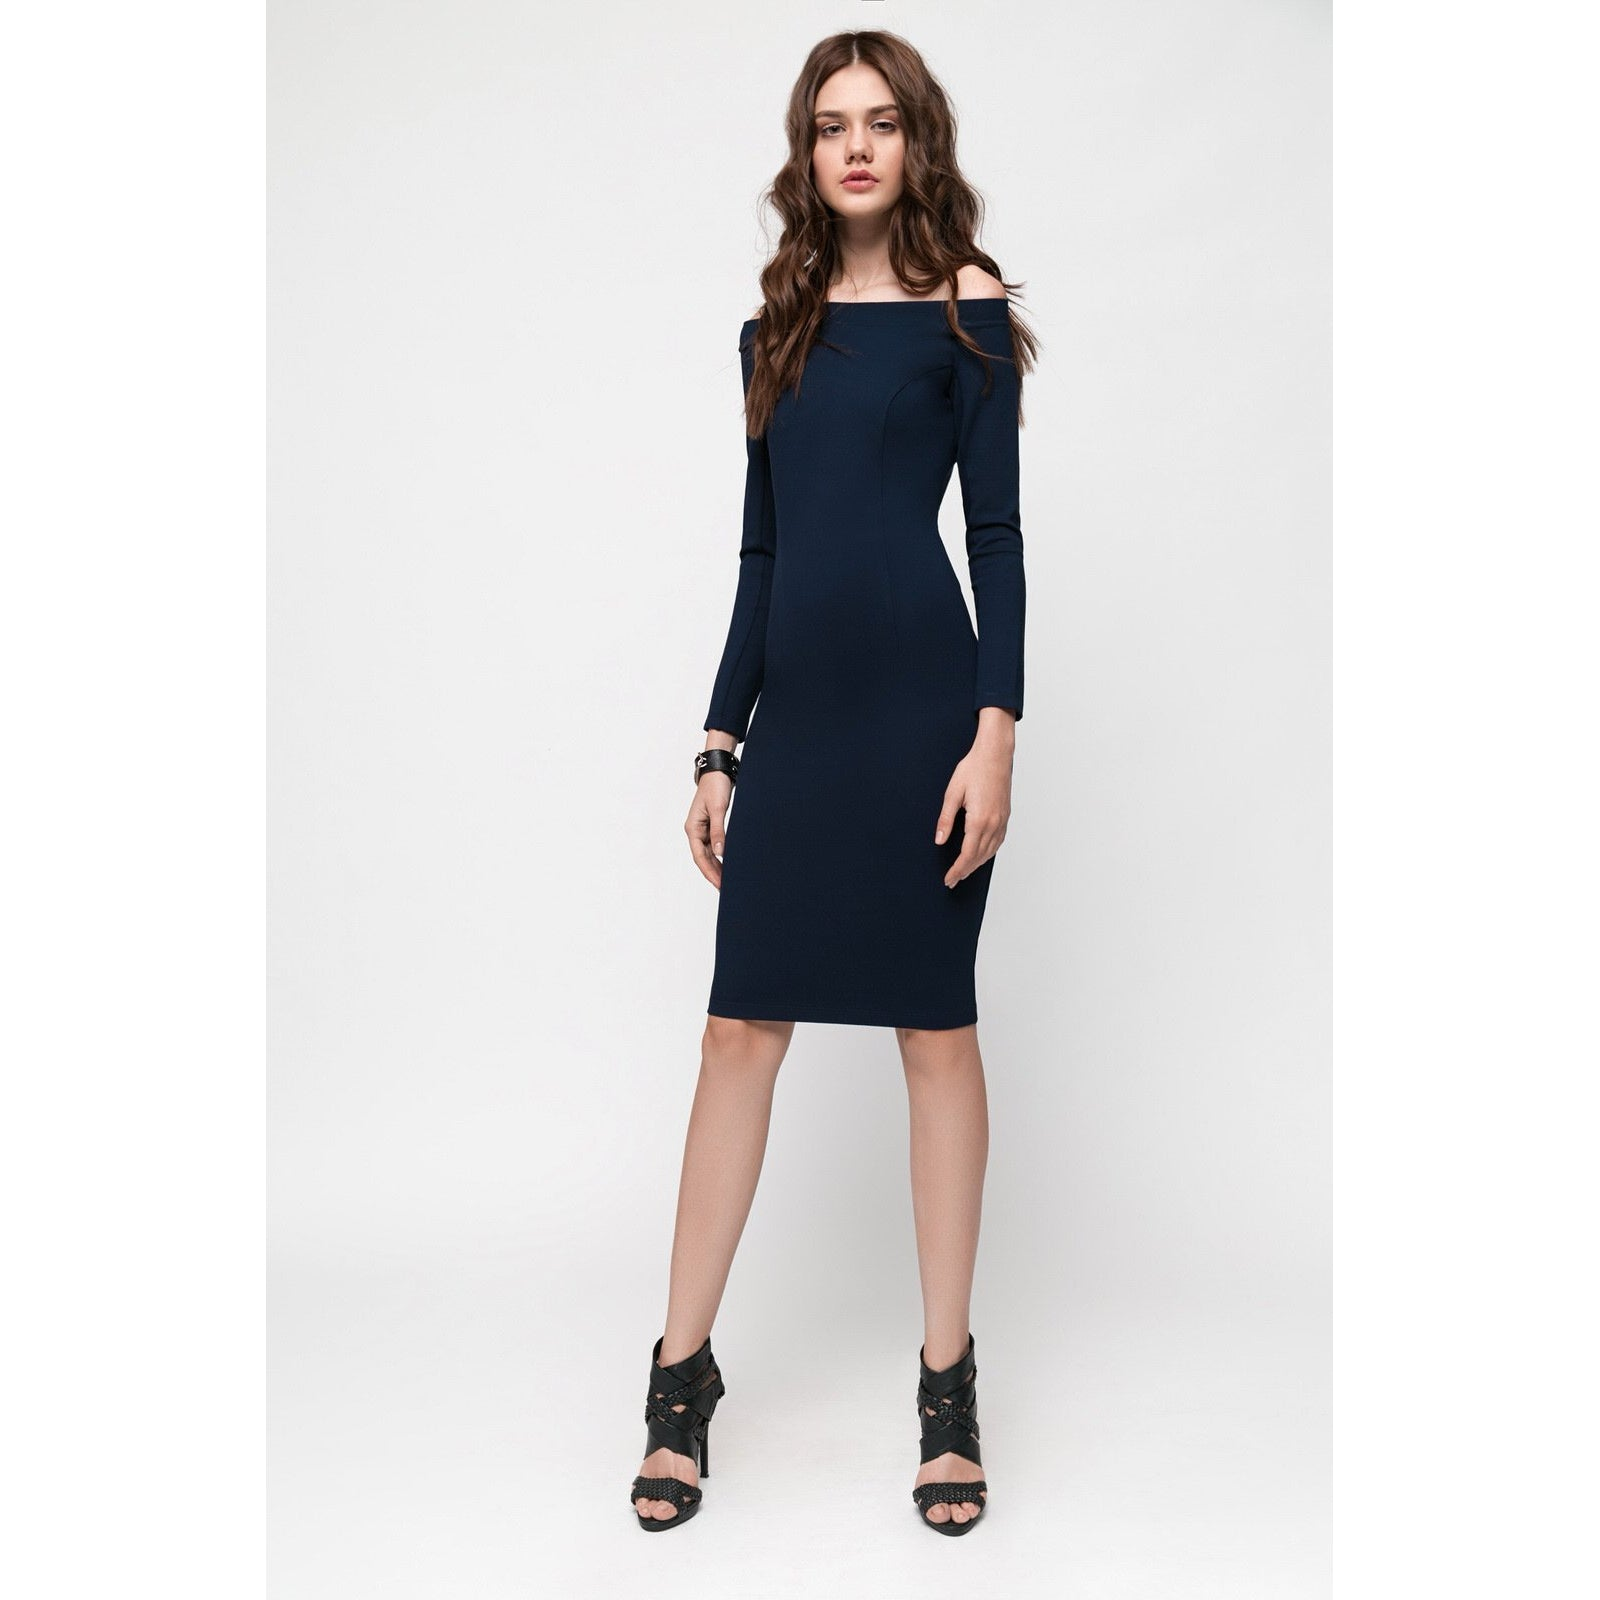 Blue Bodycon Dress The Way I Feel-OVER THE SEA-HOUSE of BOTTA